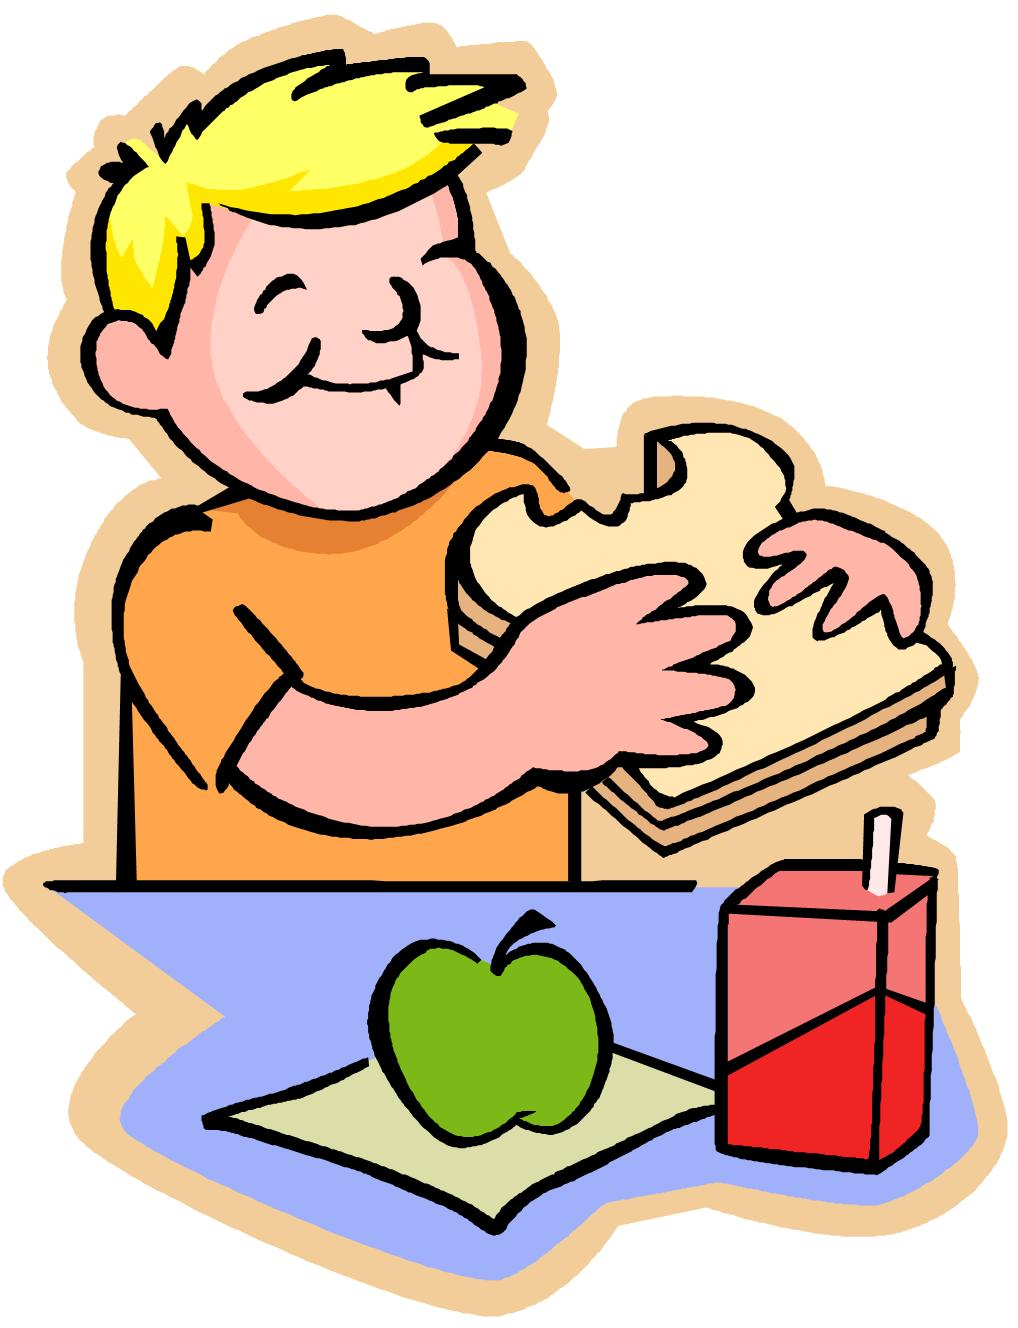 Kids Eating At Table Clipart | Clipart Panda - Free ...